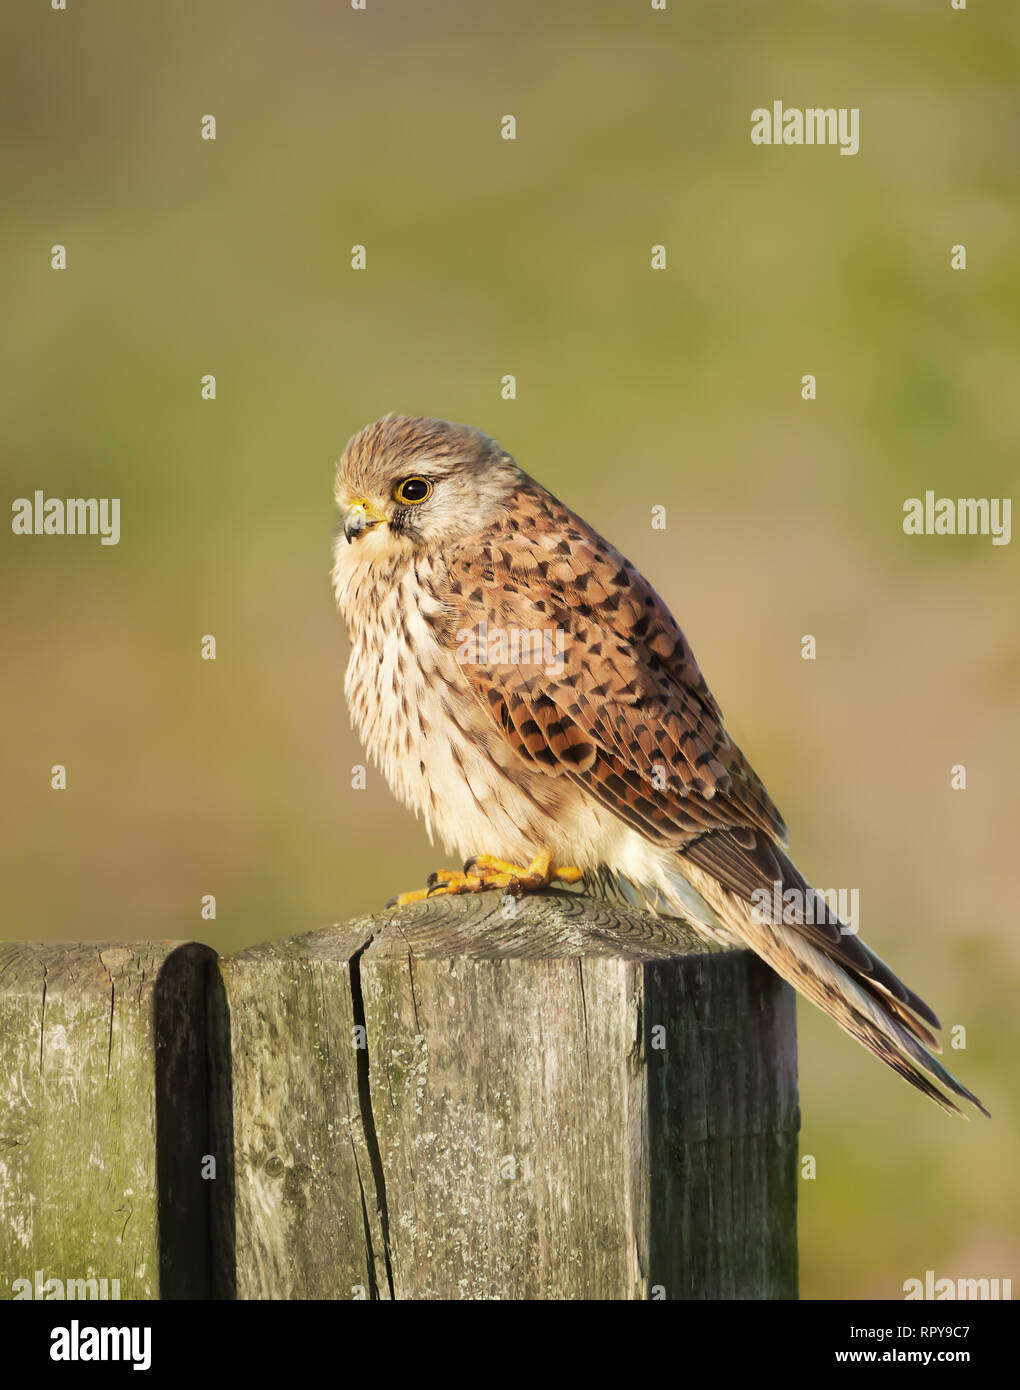 Close up of a common kestrel (Falco tinnunculus) perched on a wooden post against colorful background, UK. - Stock Image